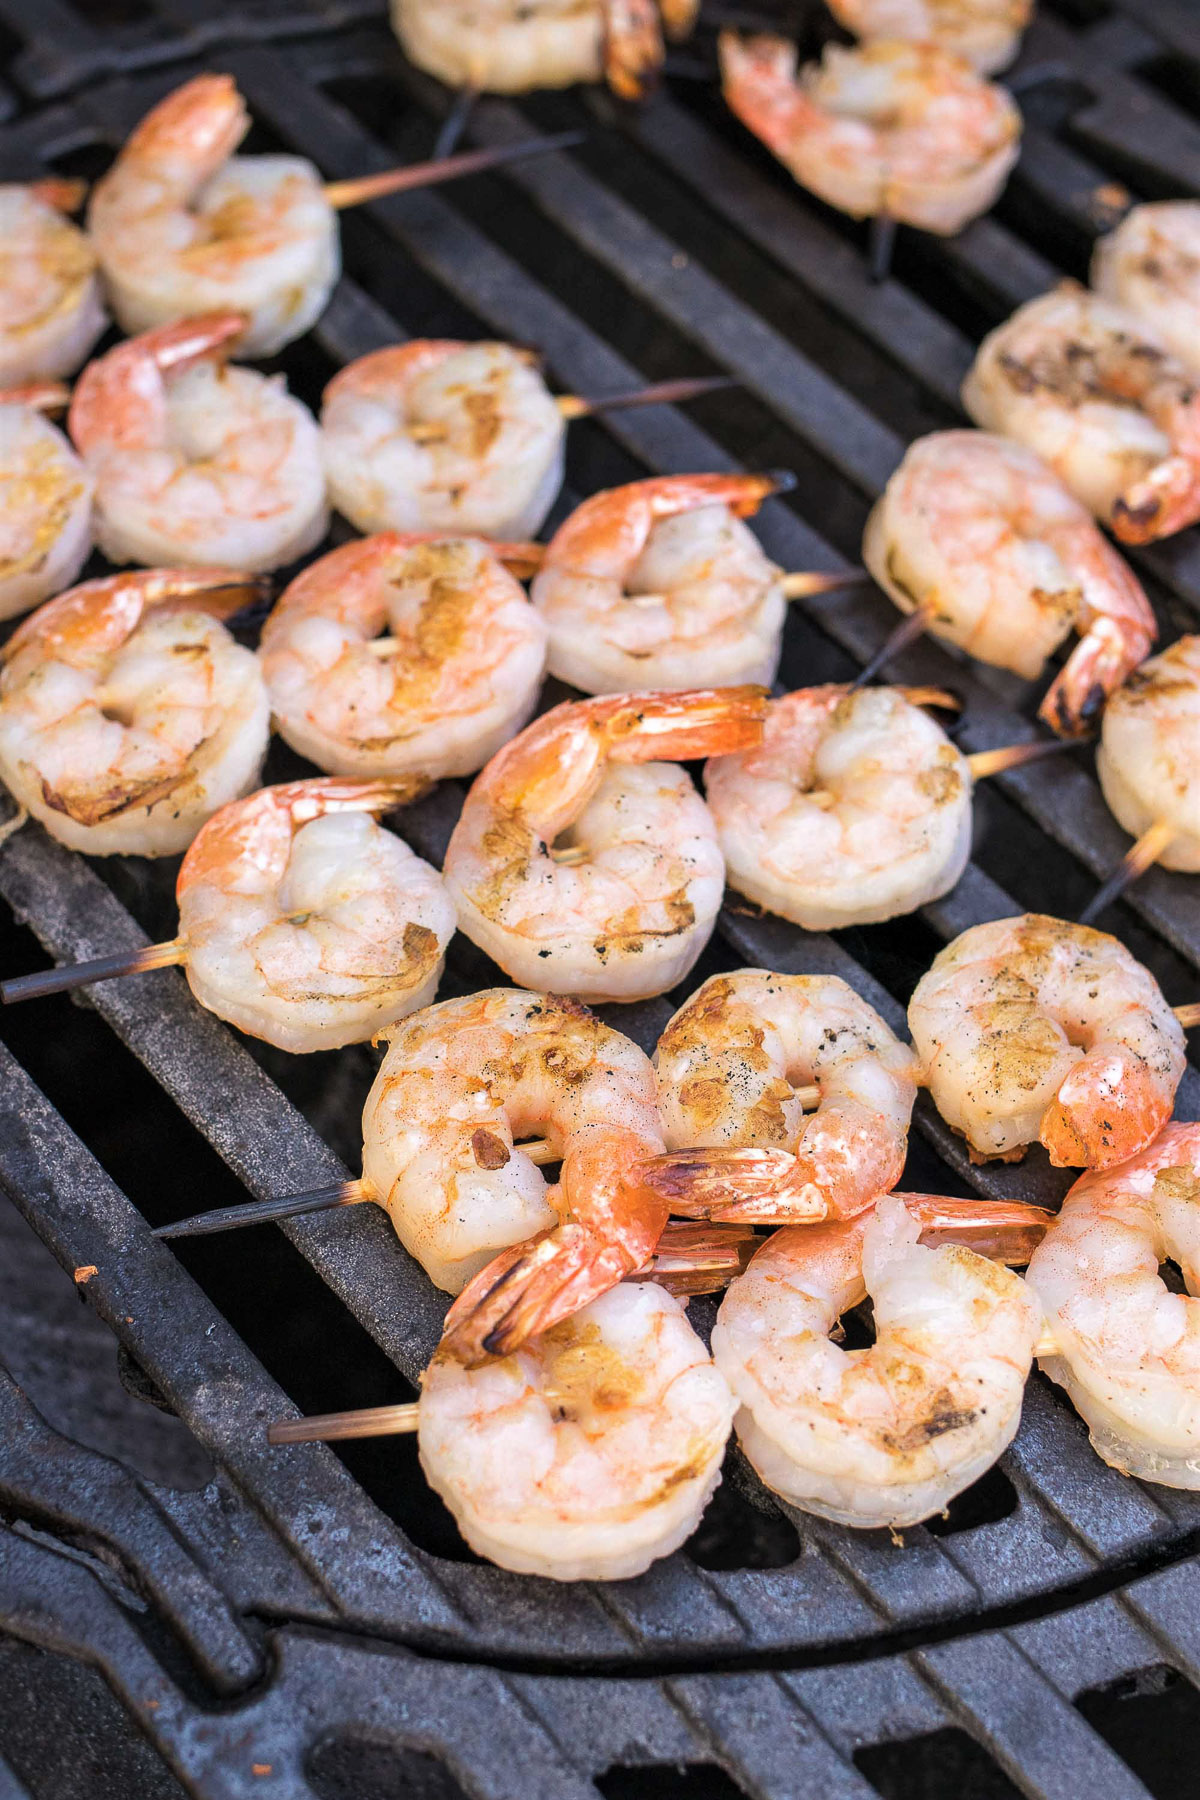 Grilled Bang Bang Shrimp Skewers cooking on the grill